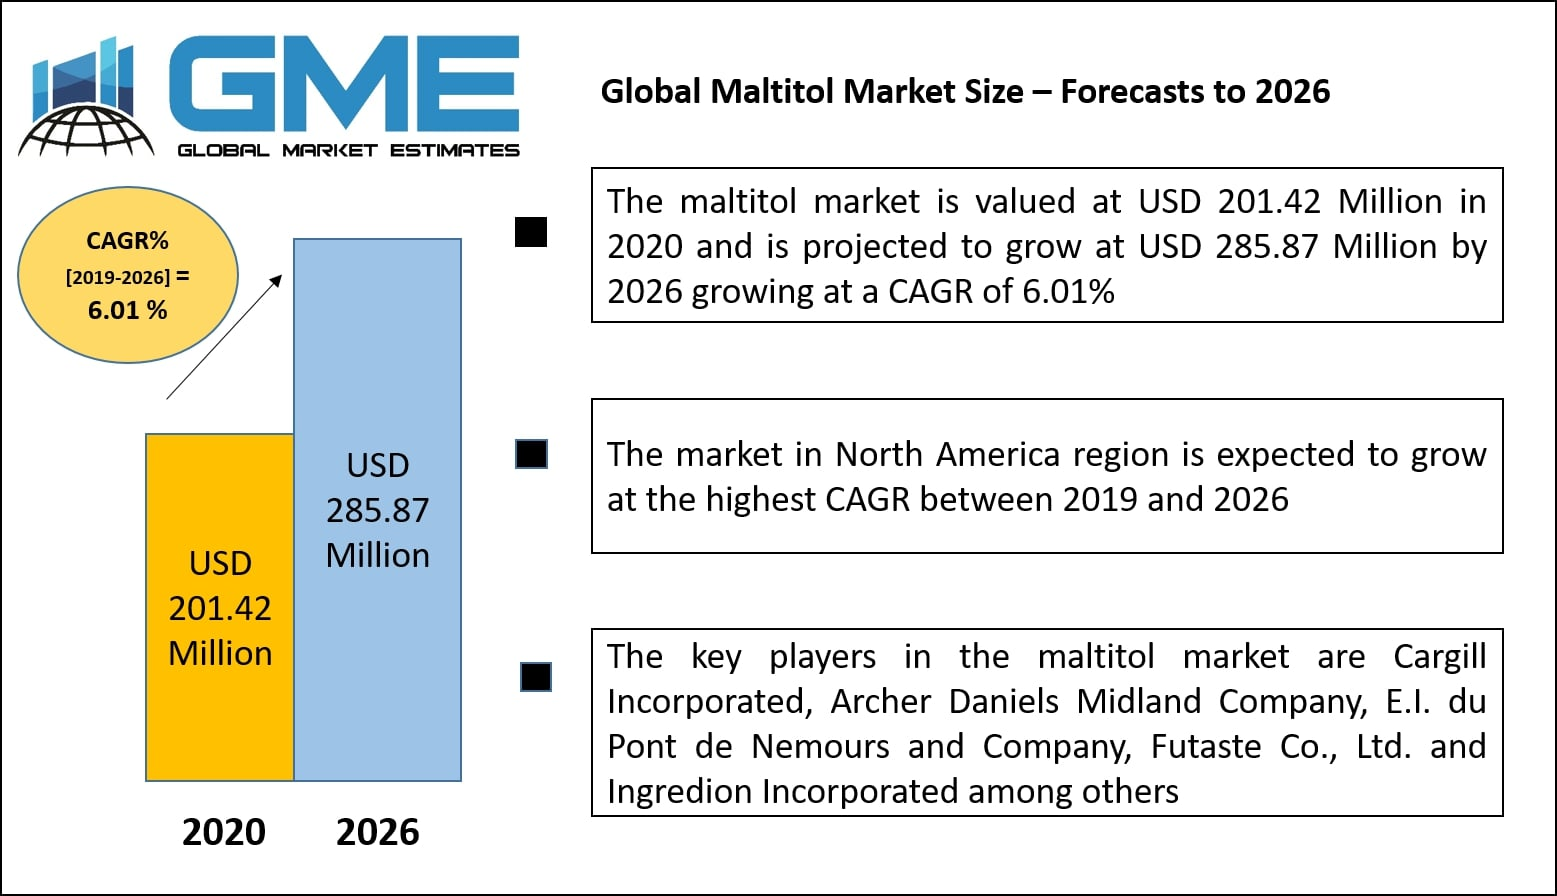 Global Maltitol Market Size – Forecasts to 2026